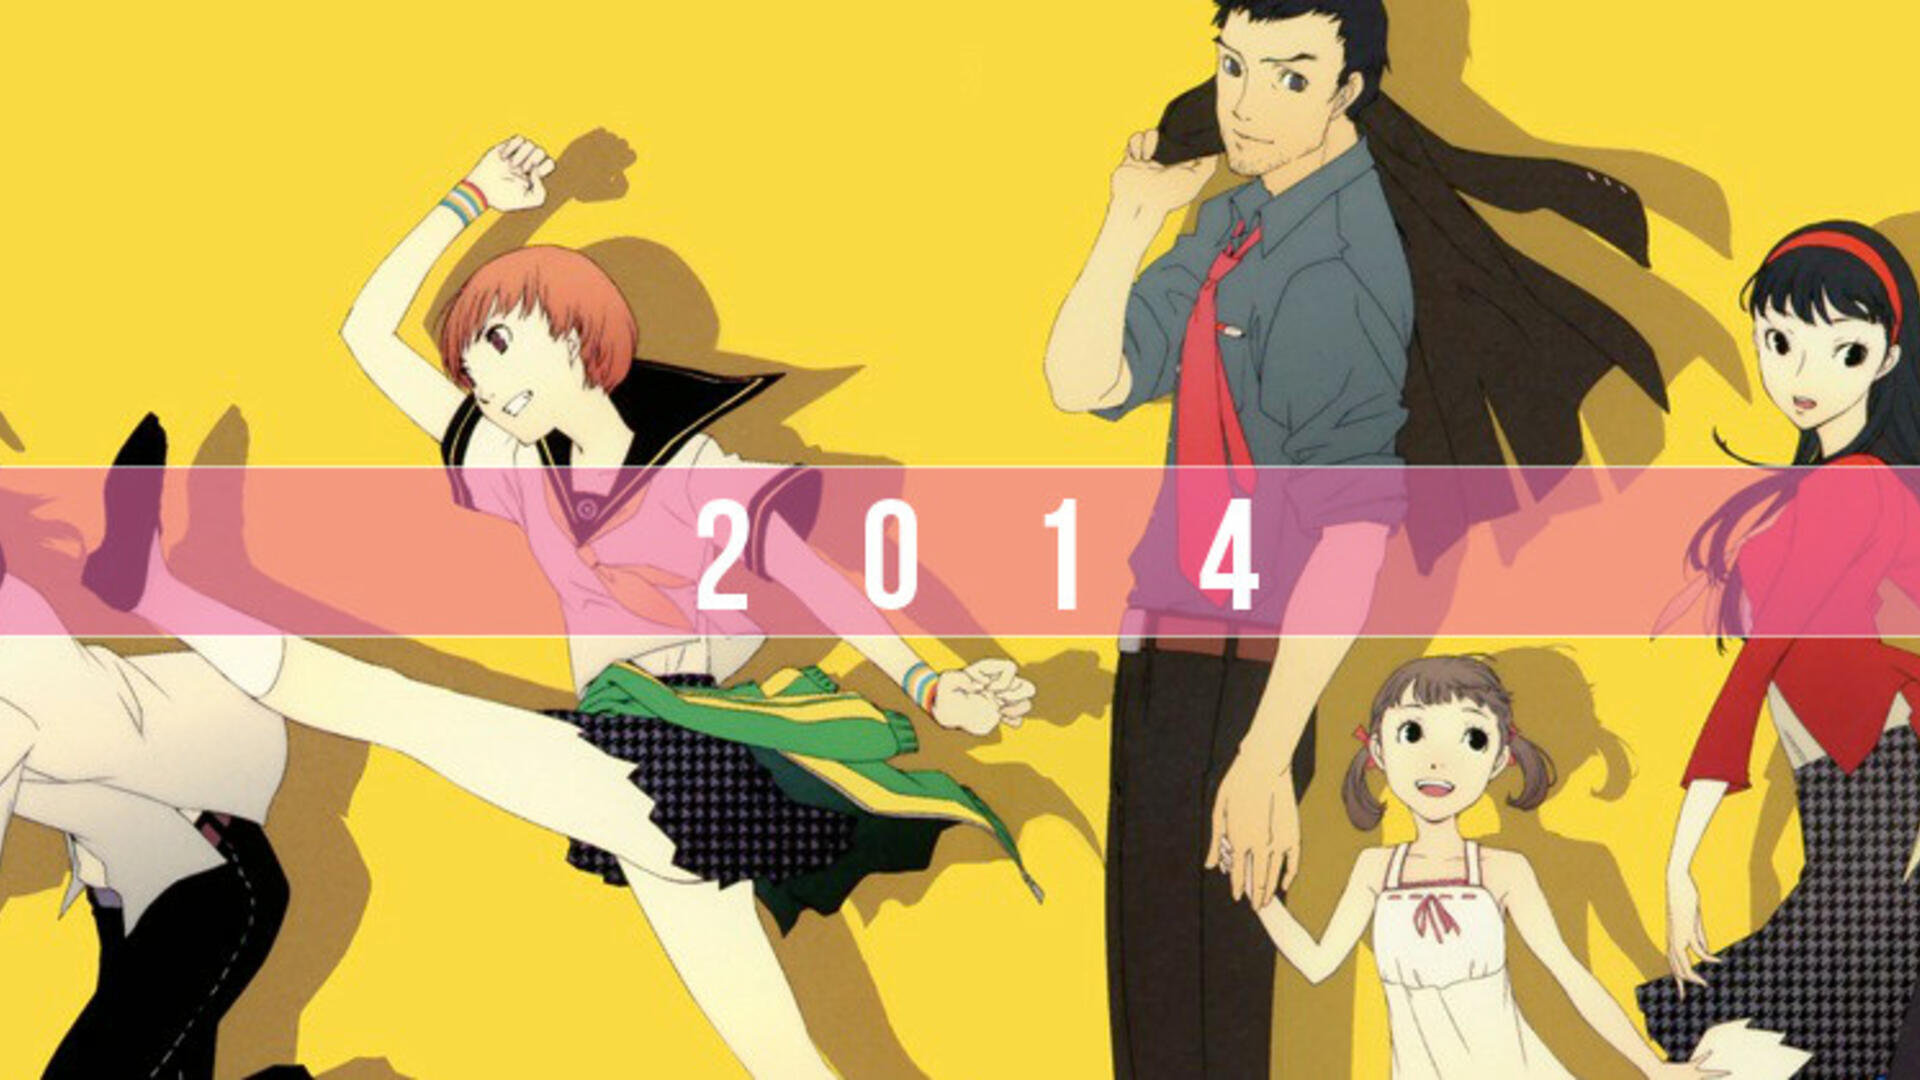 2014 in Preview: Want Emancipation? No, We Want Persona 5.